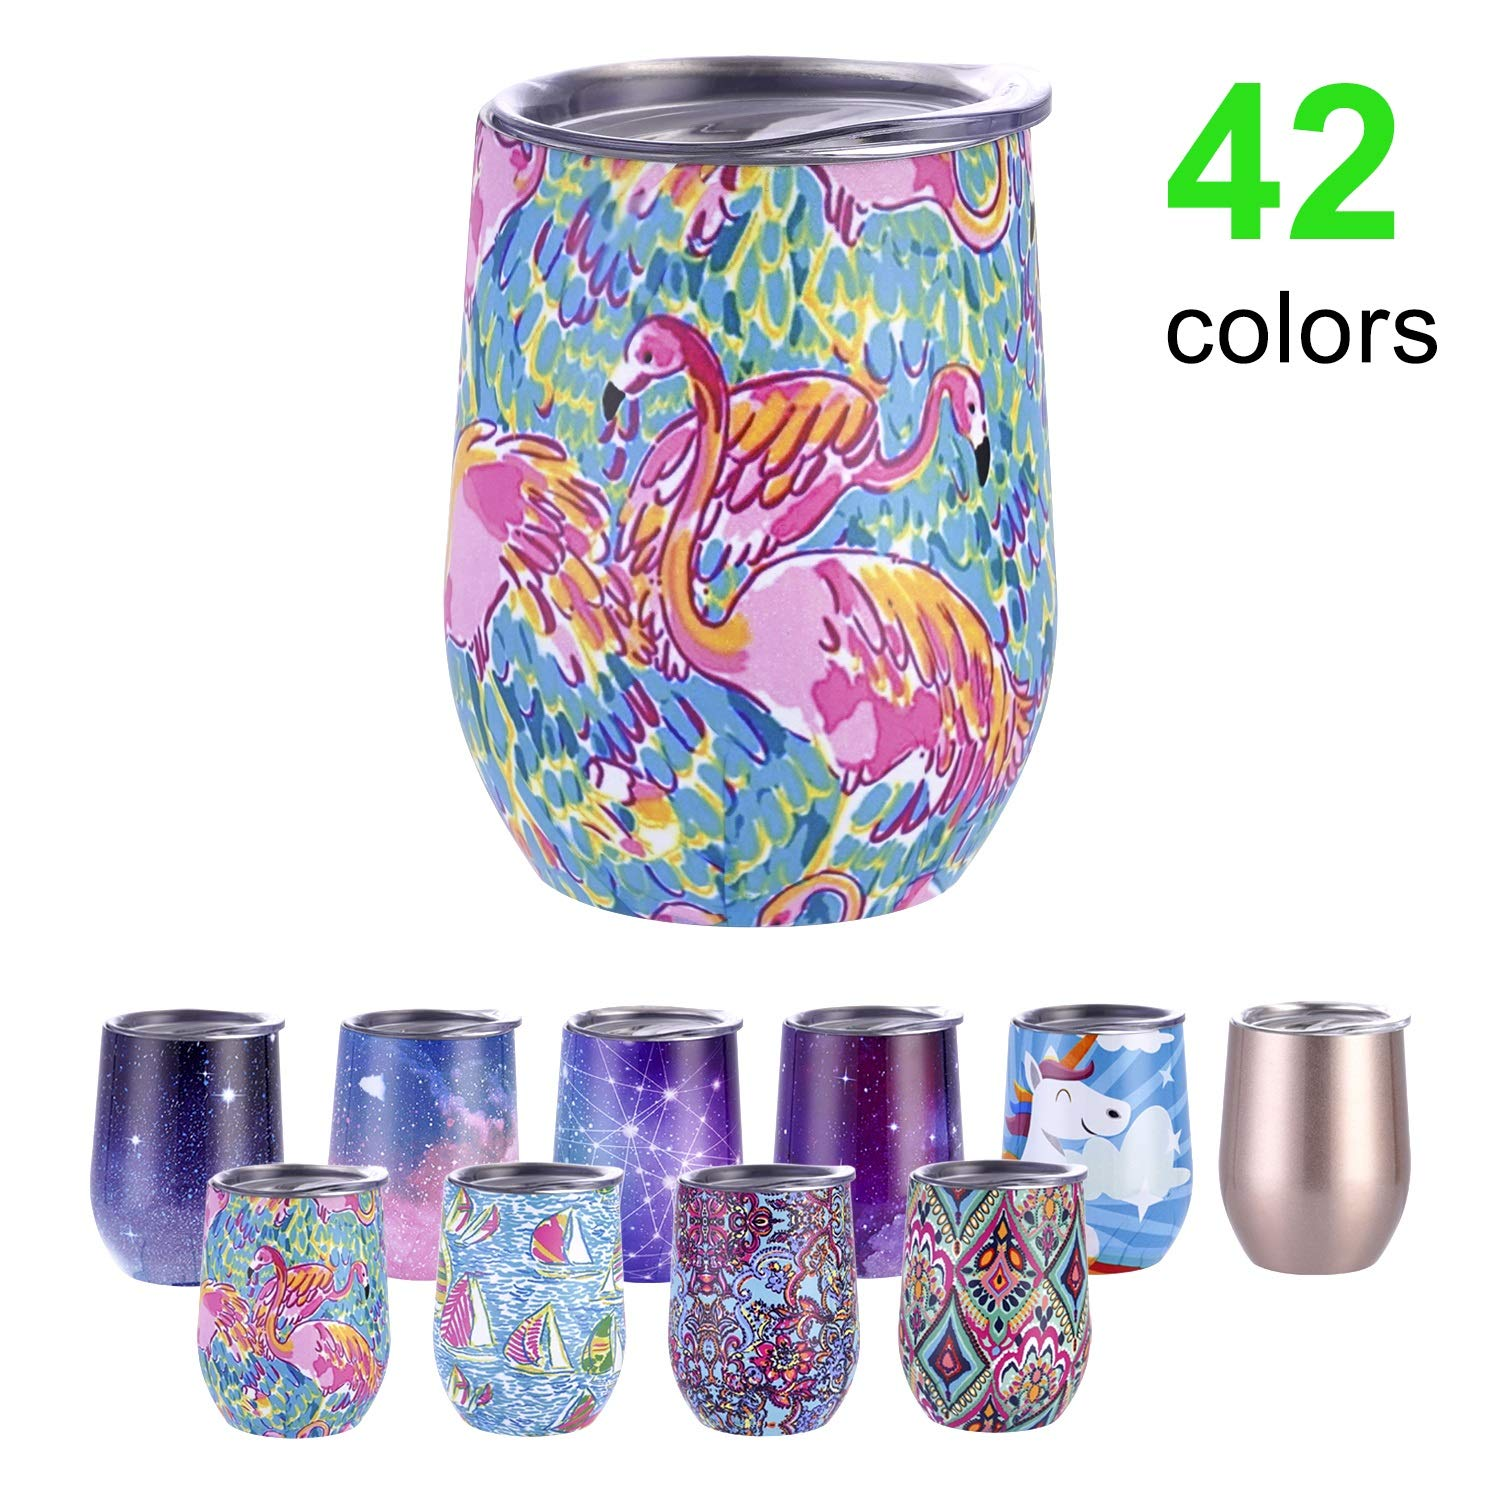 Insulated Wine Tumbler with Lid,12oz Stemless Stainless Steel Insulated Wine Glass,Double Vacuum Insulated Travel Tumbler Cup for Keeping Wine, Coffee, Drinks, Champagne, Cocktails